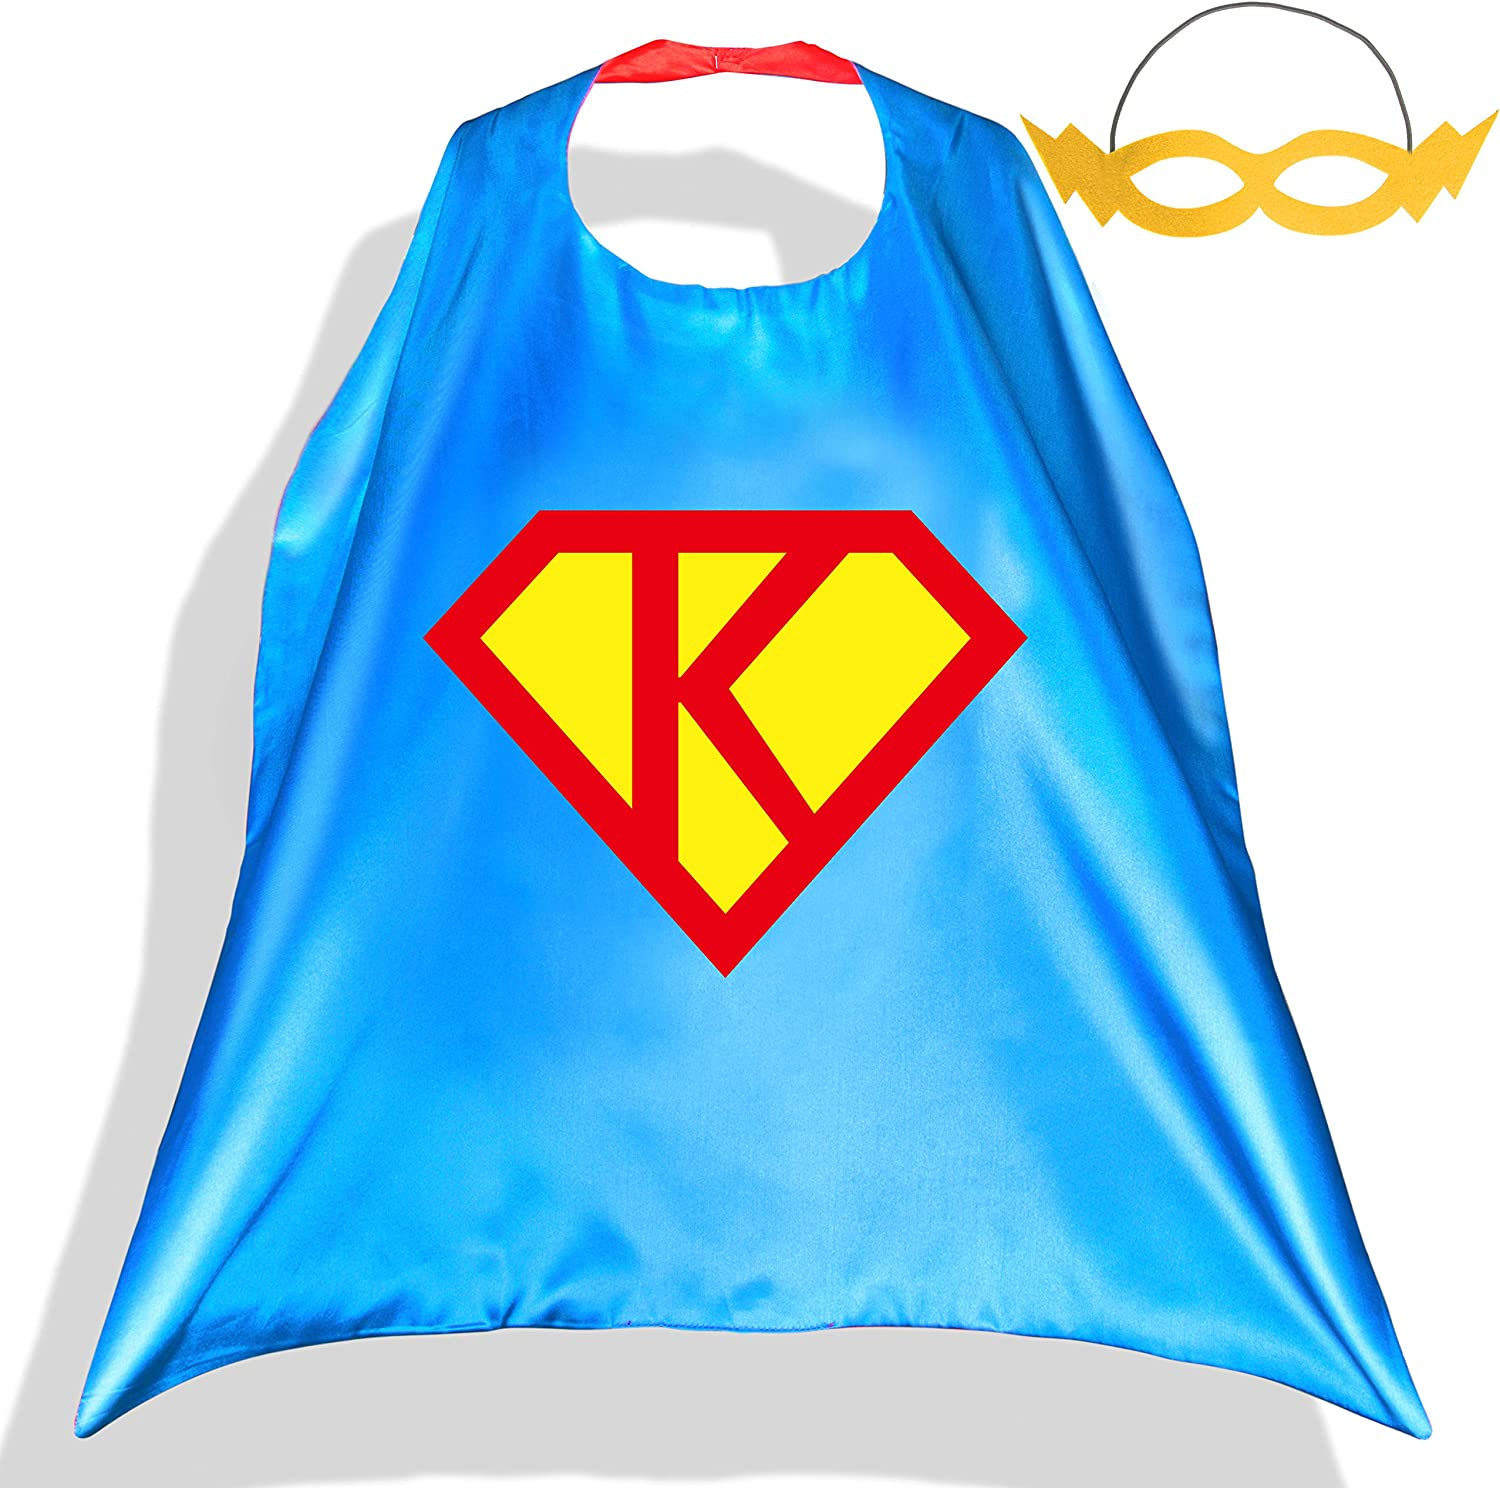 PROLOSO Superhero Capes with Felt Masks for Kids Super Hero Diamond Costume Cartoon Pretend Play Dress Up Outfit 26 Letters